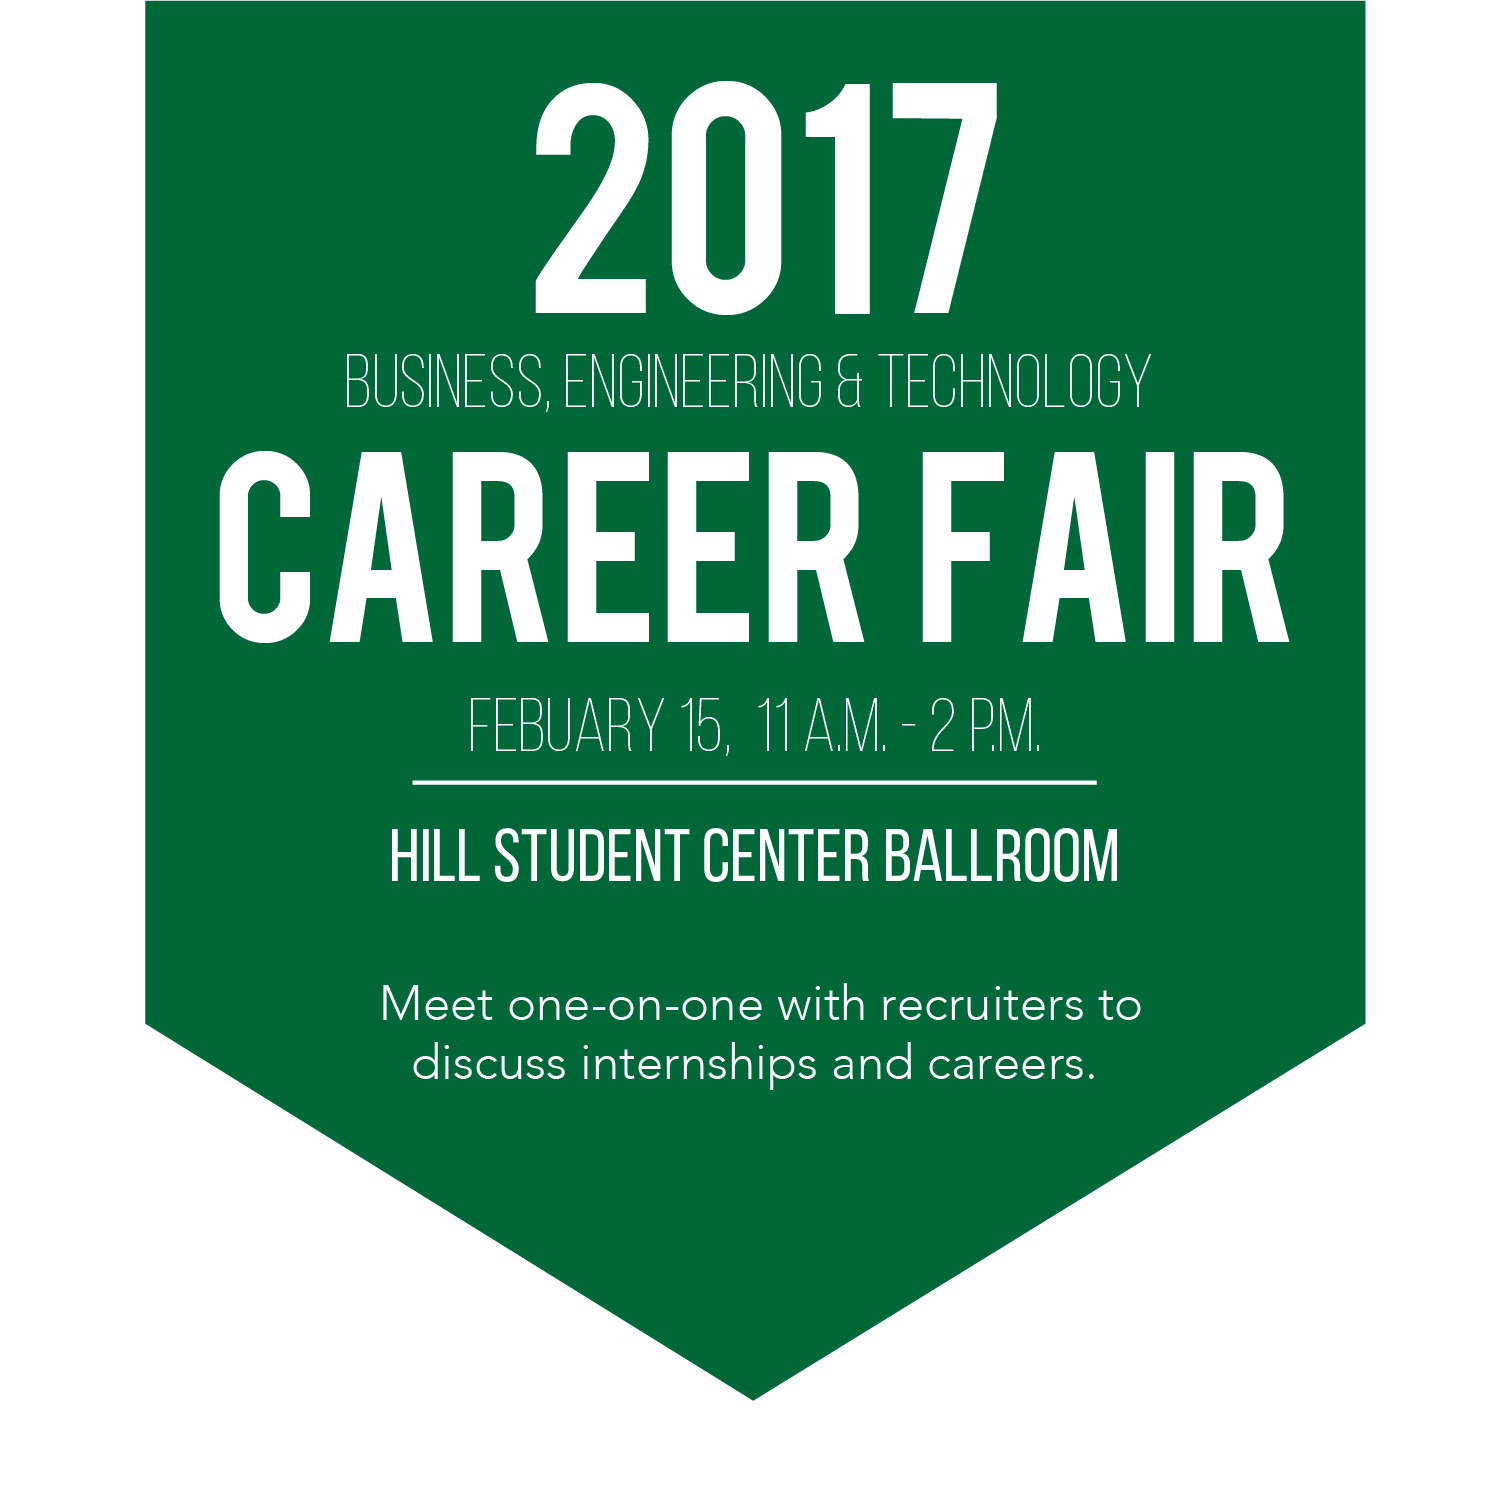 Business, Engineering and Technology Career Fair this Wednesday